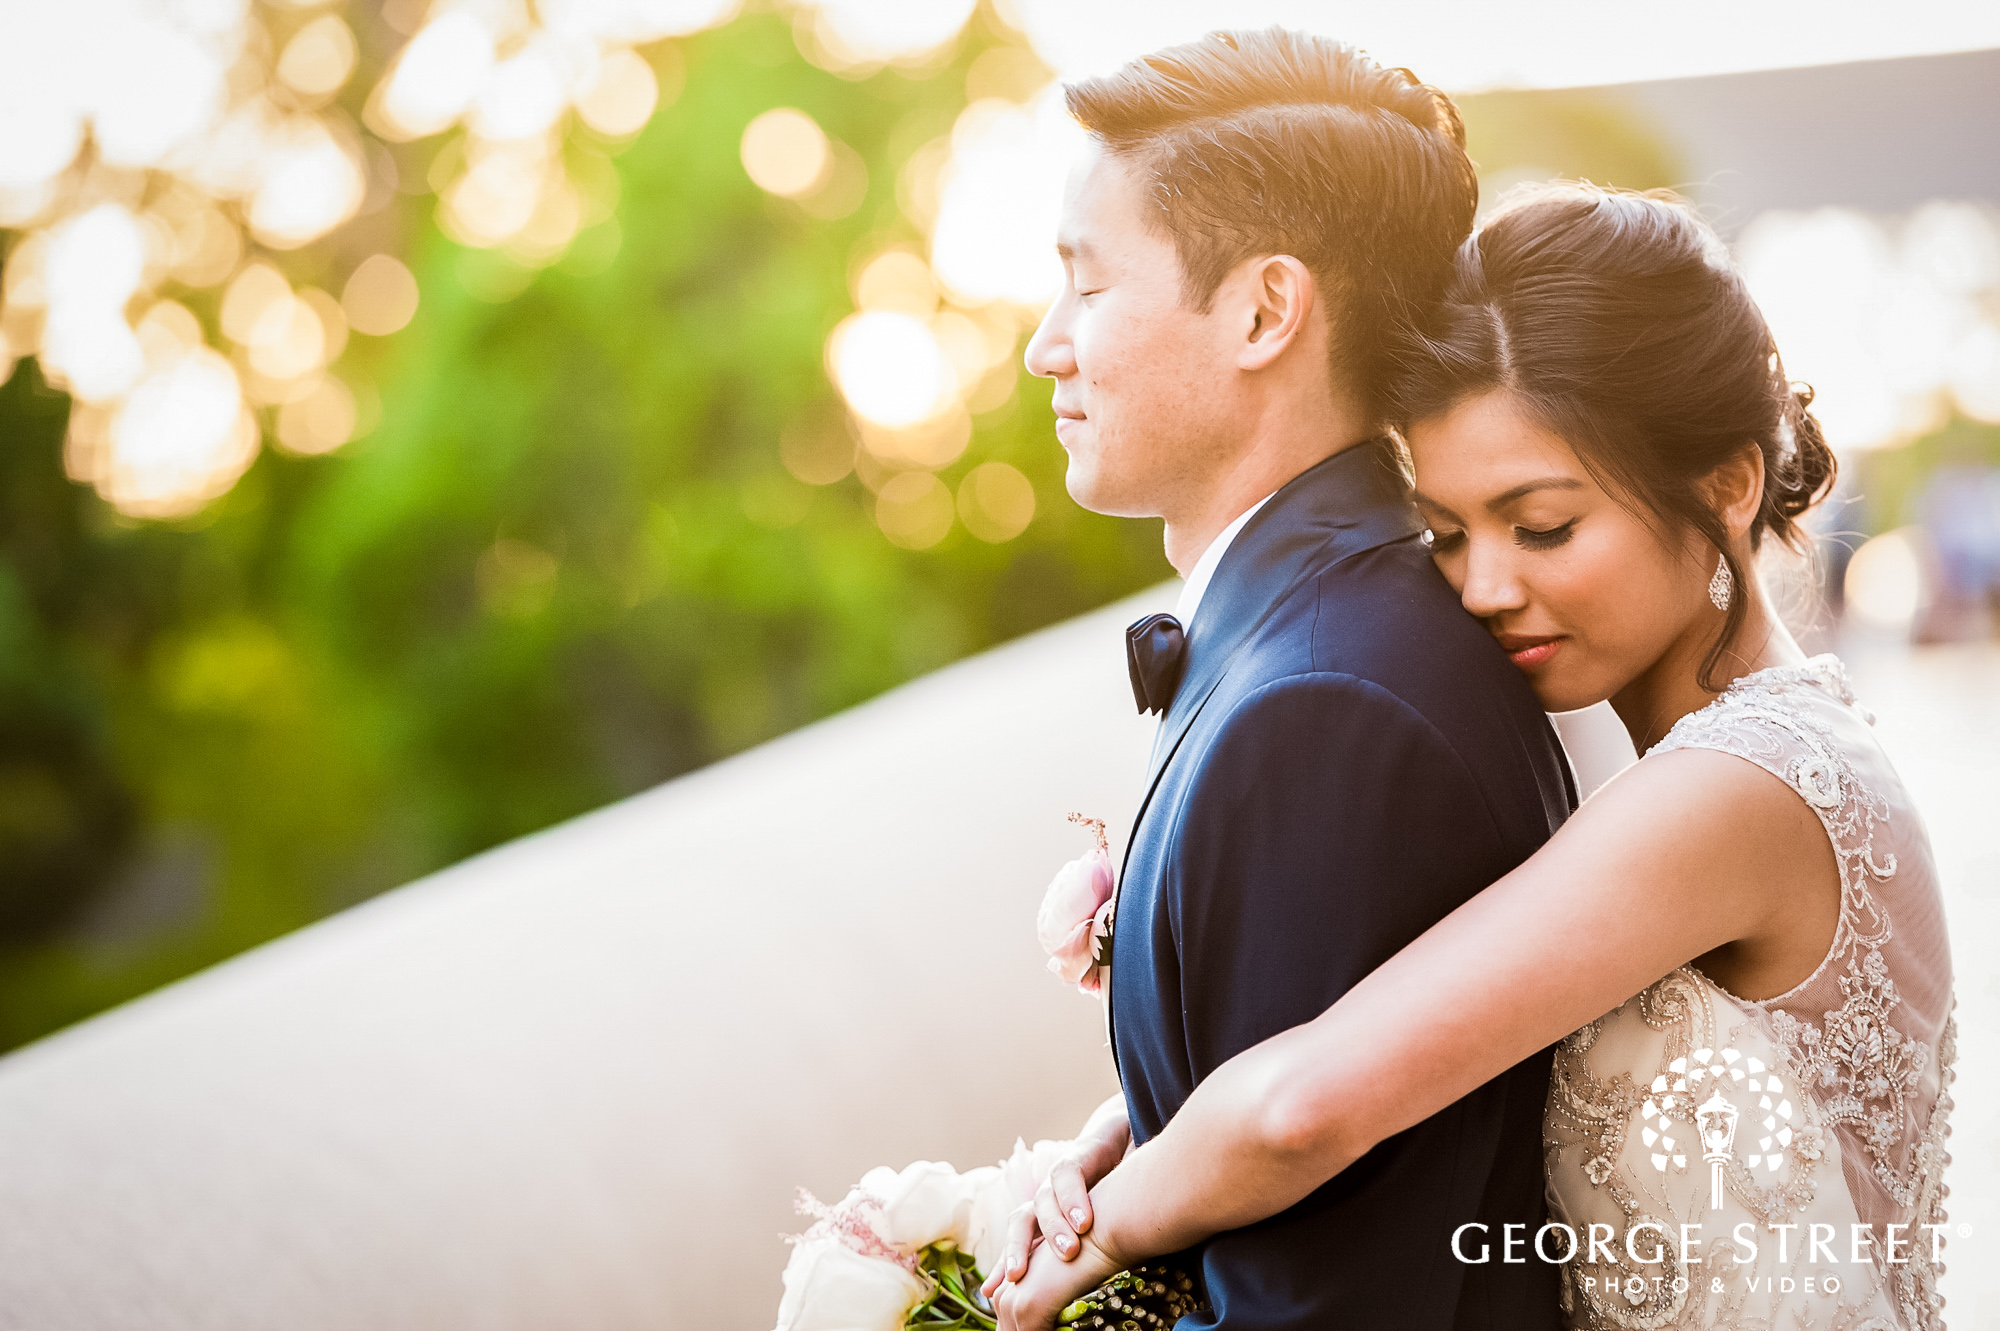 6 Tips For Capturing Magical Wedding Photos